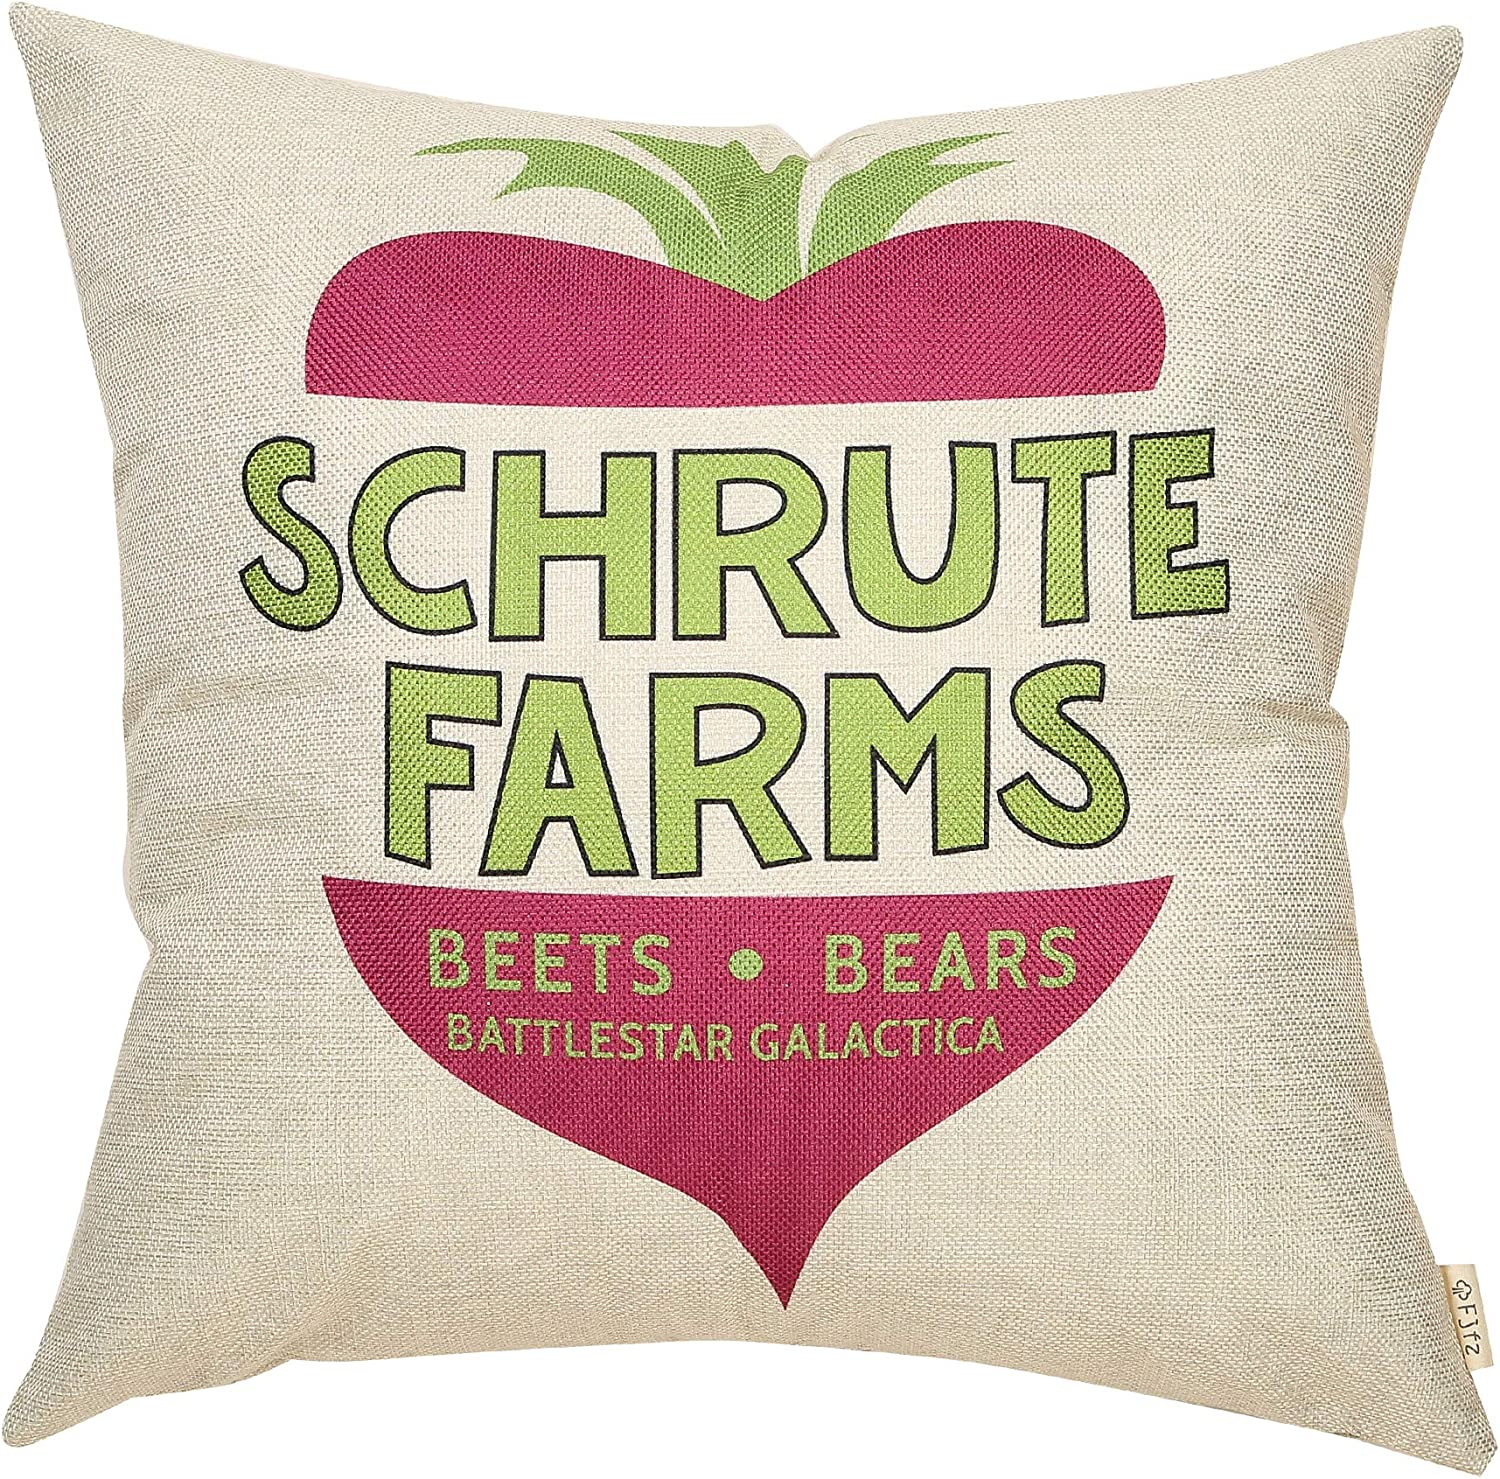 "Fjfz The Office Funny Décor TV Show Lover, Schrute Farms Decoration, Bears Beets Battlestar Galactica Sign Cotton Linen Home Decorative Throw Pillow Case Cushion Cover for Sofa Couch 18"" x 18"""